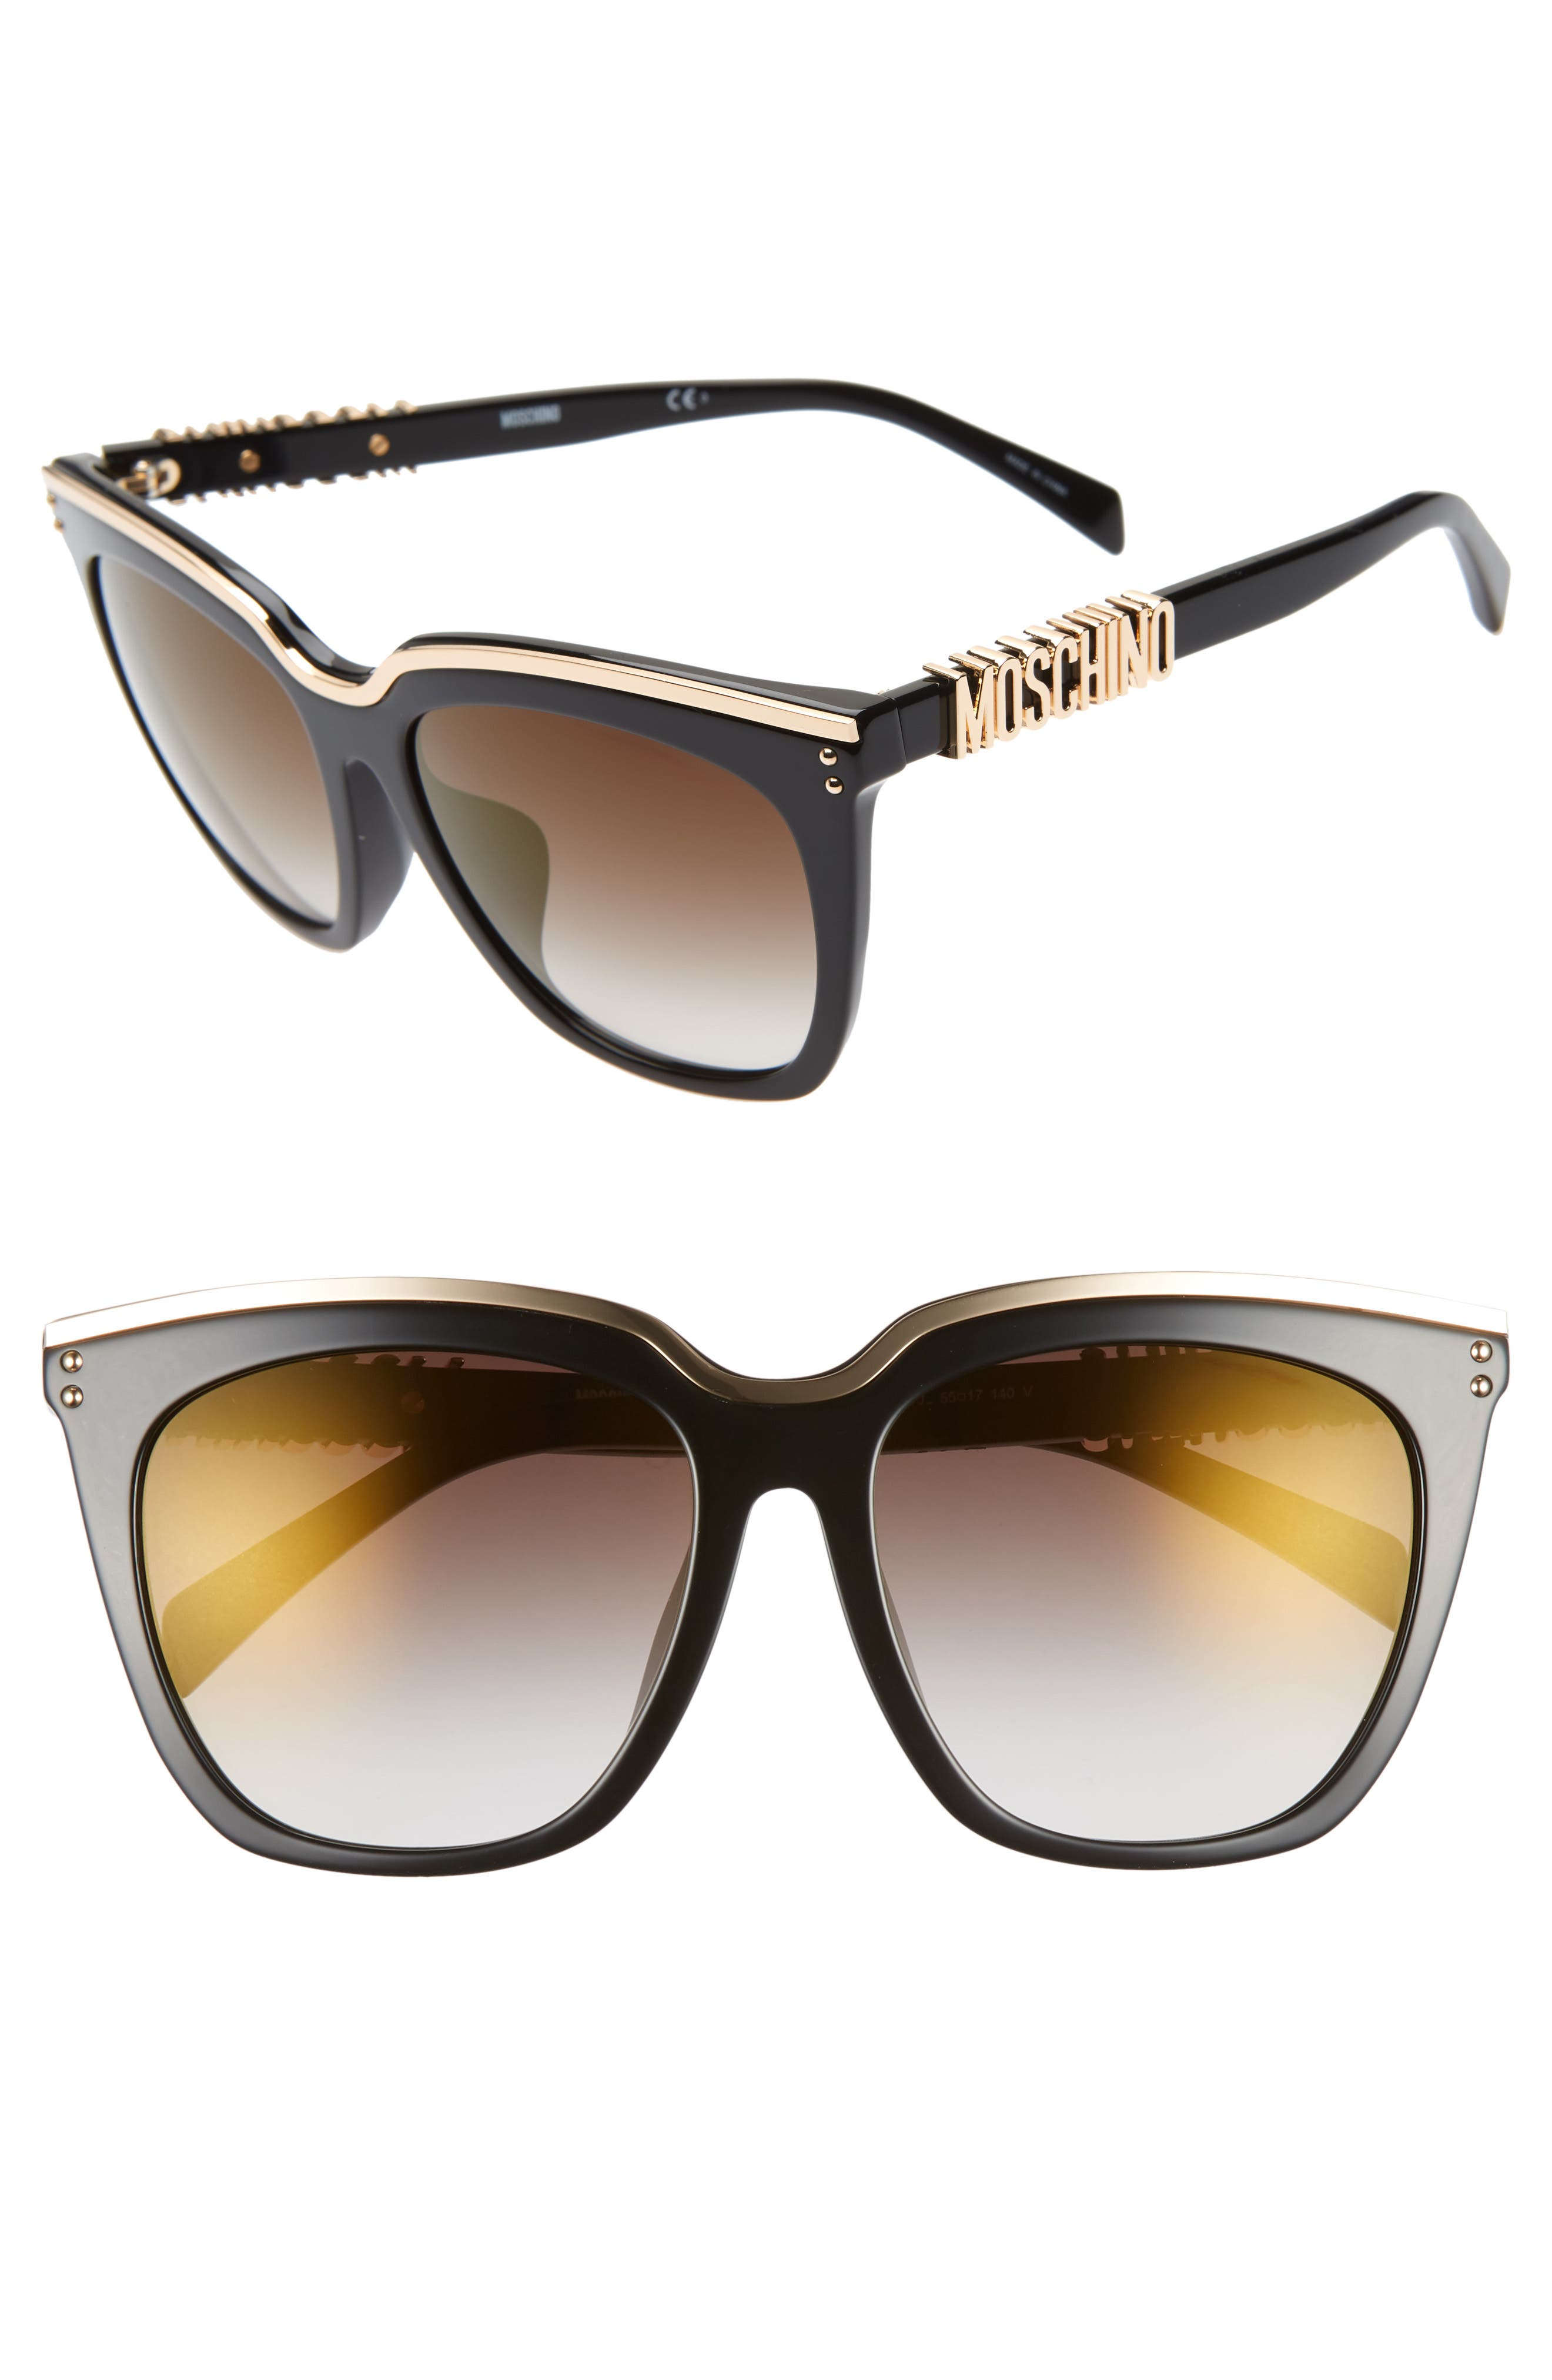 55mm Special Fit Mirrored Cat Eye Sunglasses,                             Main thumbnail 1, color,                             BLACK/ GOLD